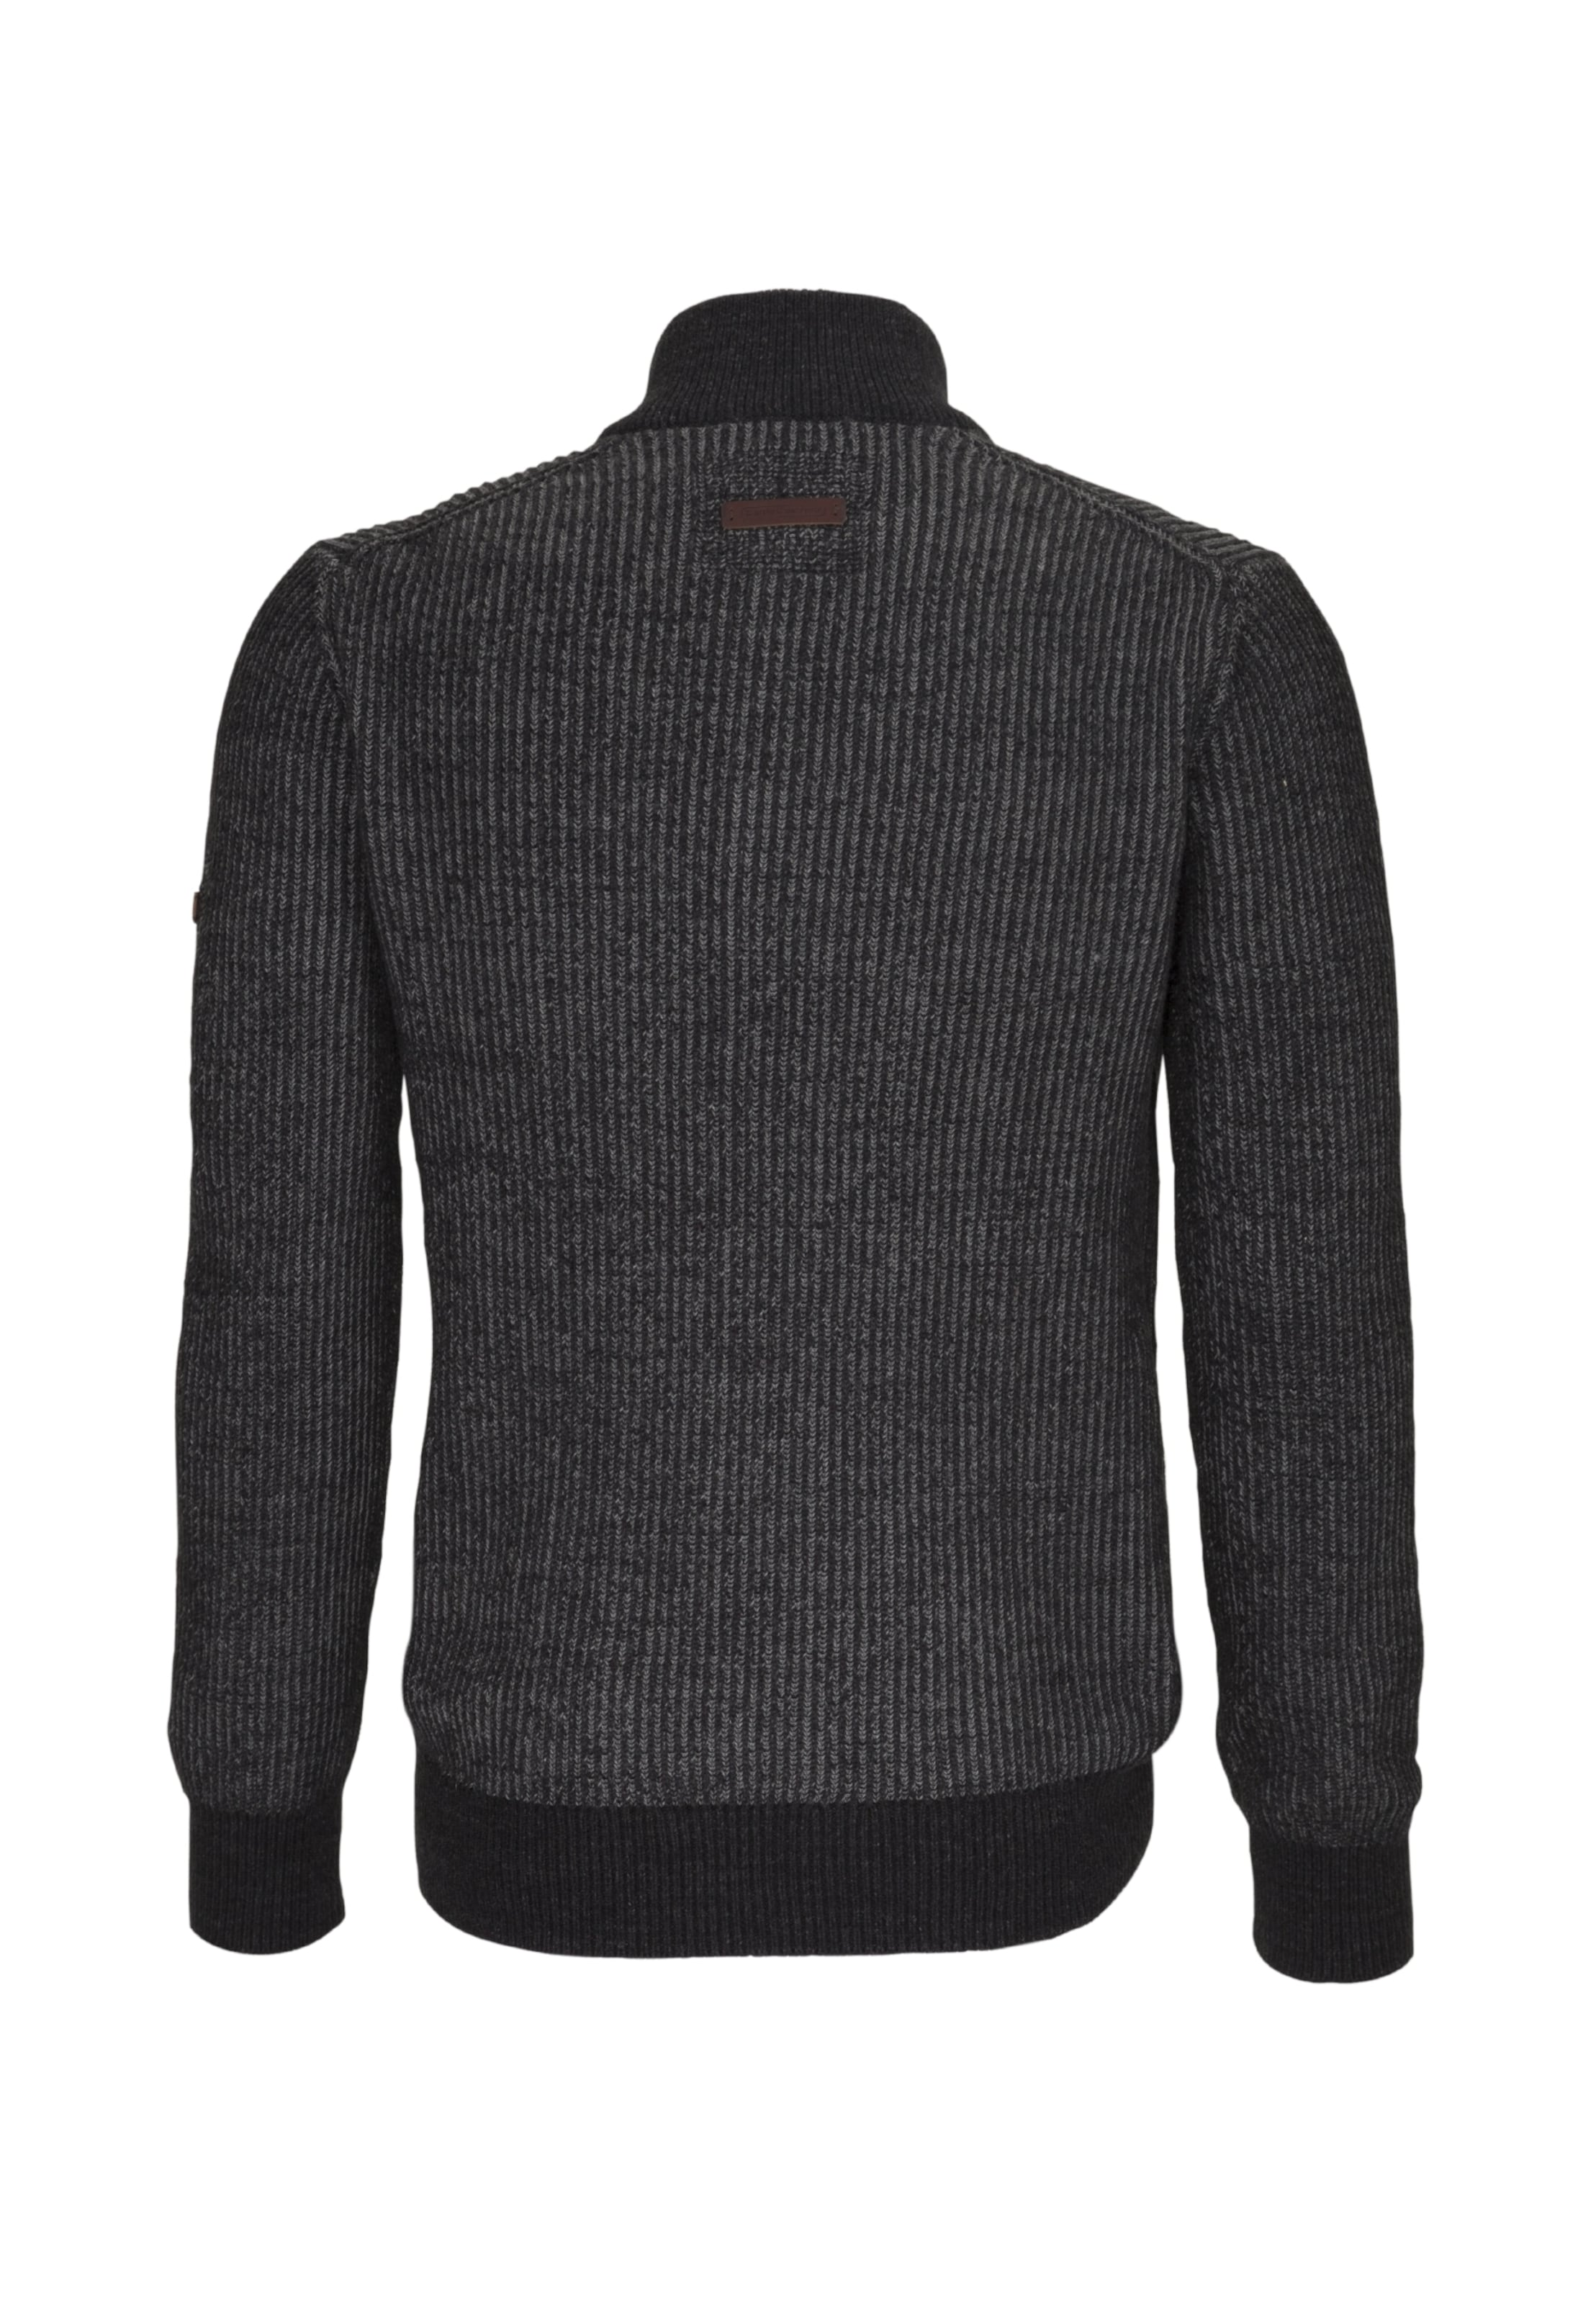 Active In Grau Pullover Camel Active In Camel Pullover Grau xBotsrdQCh